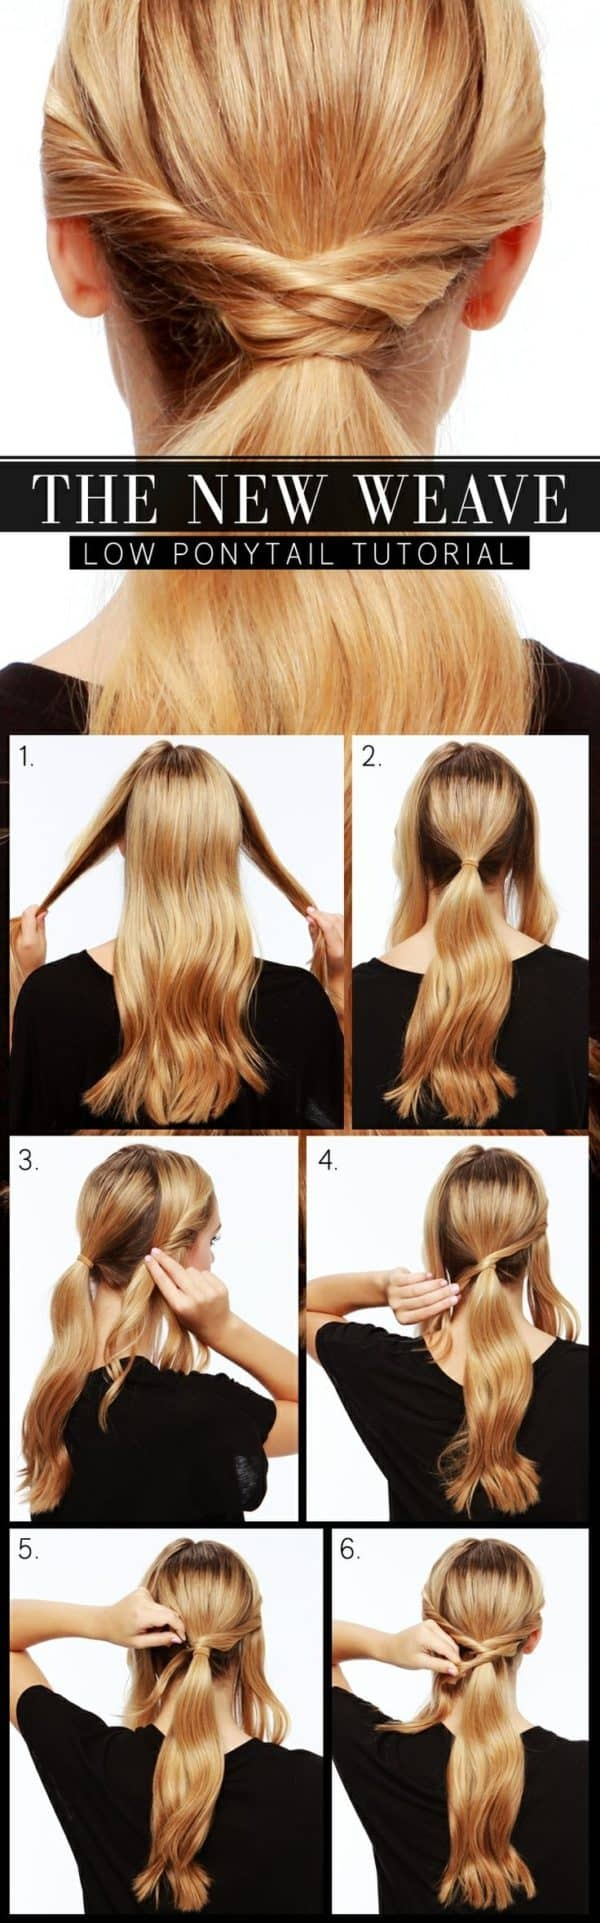 Chic DIY Pony Tails Hairstyles To Try This Spring